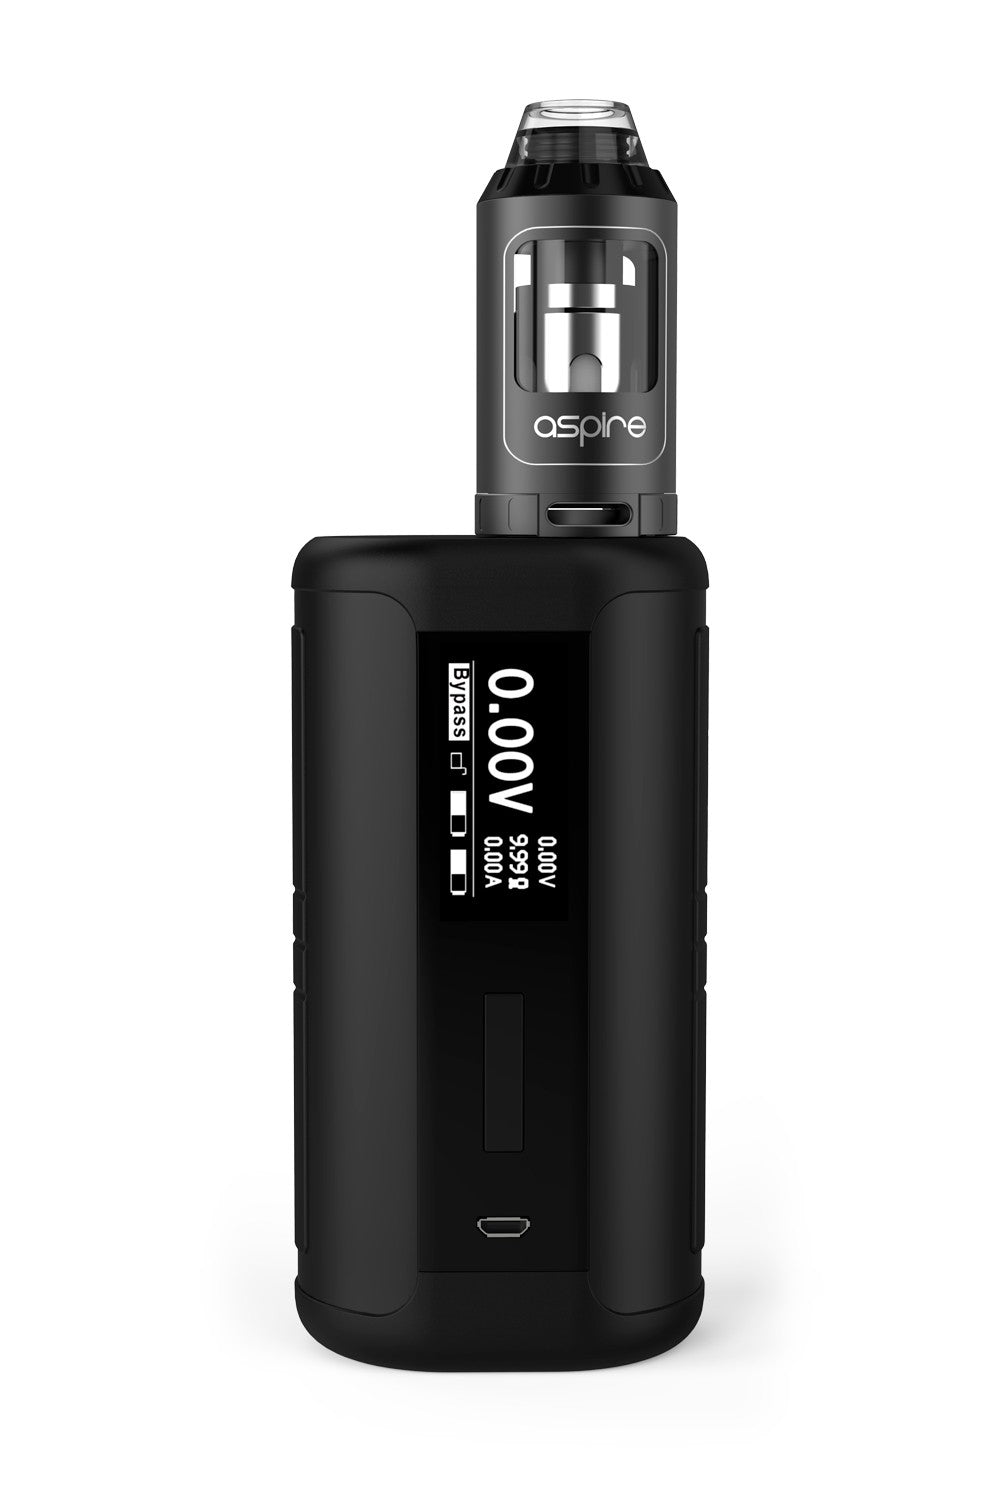 Aspire - Mod Kit Speeder 200w Athos Black for sale